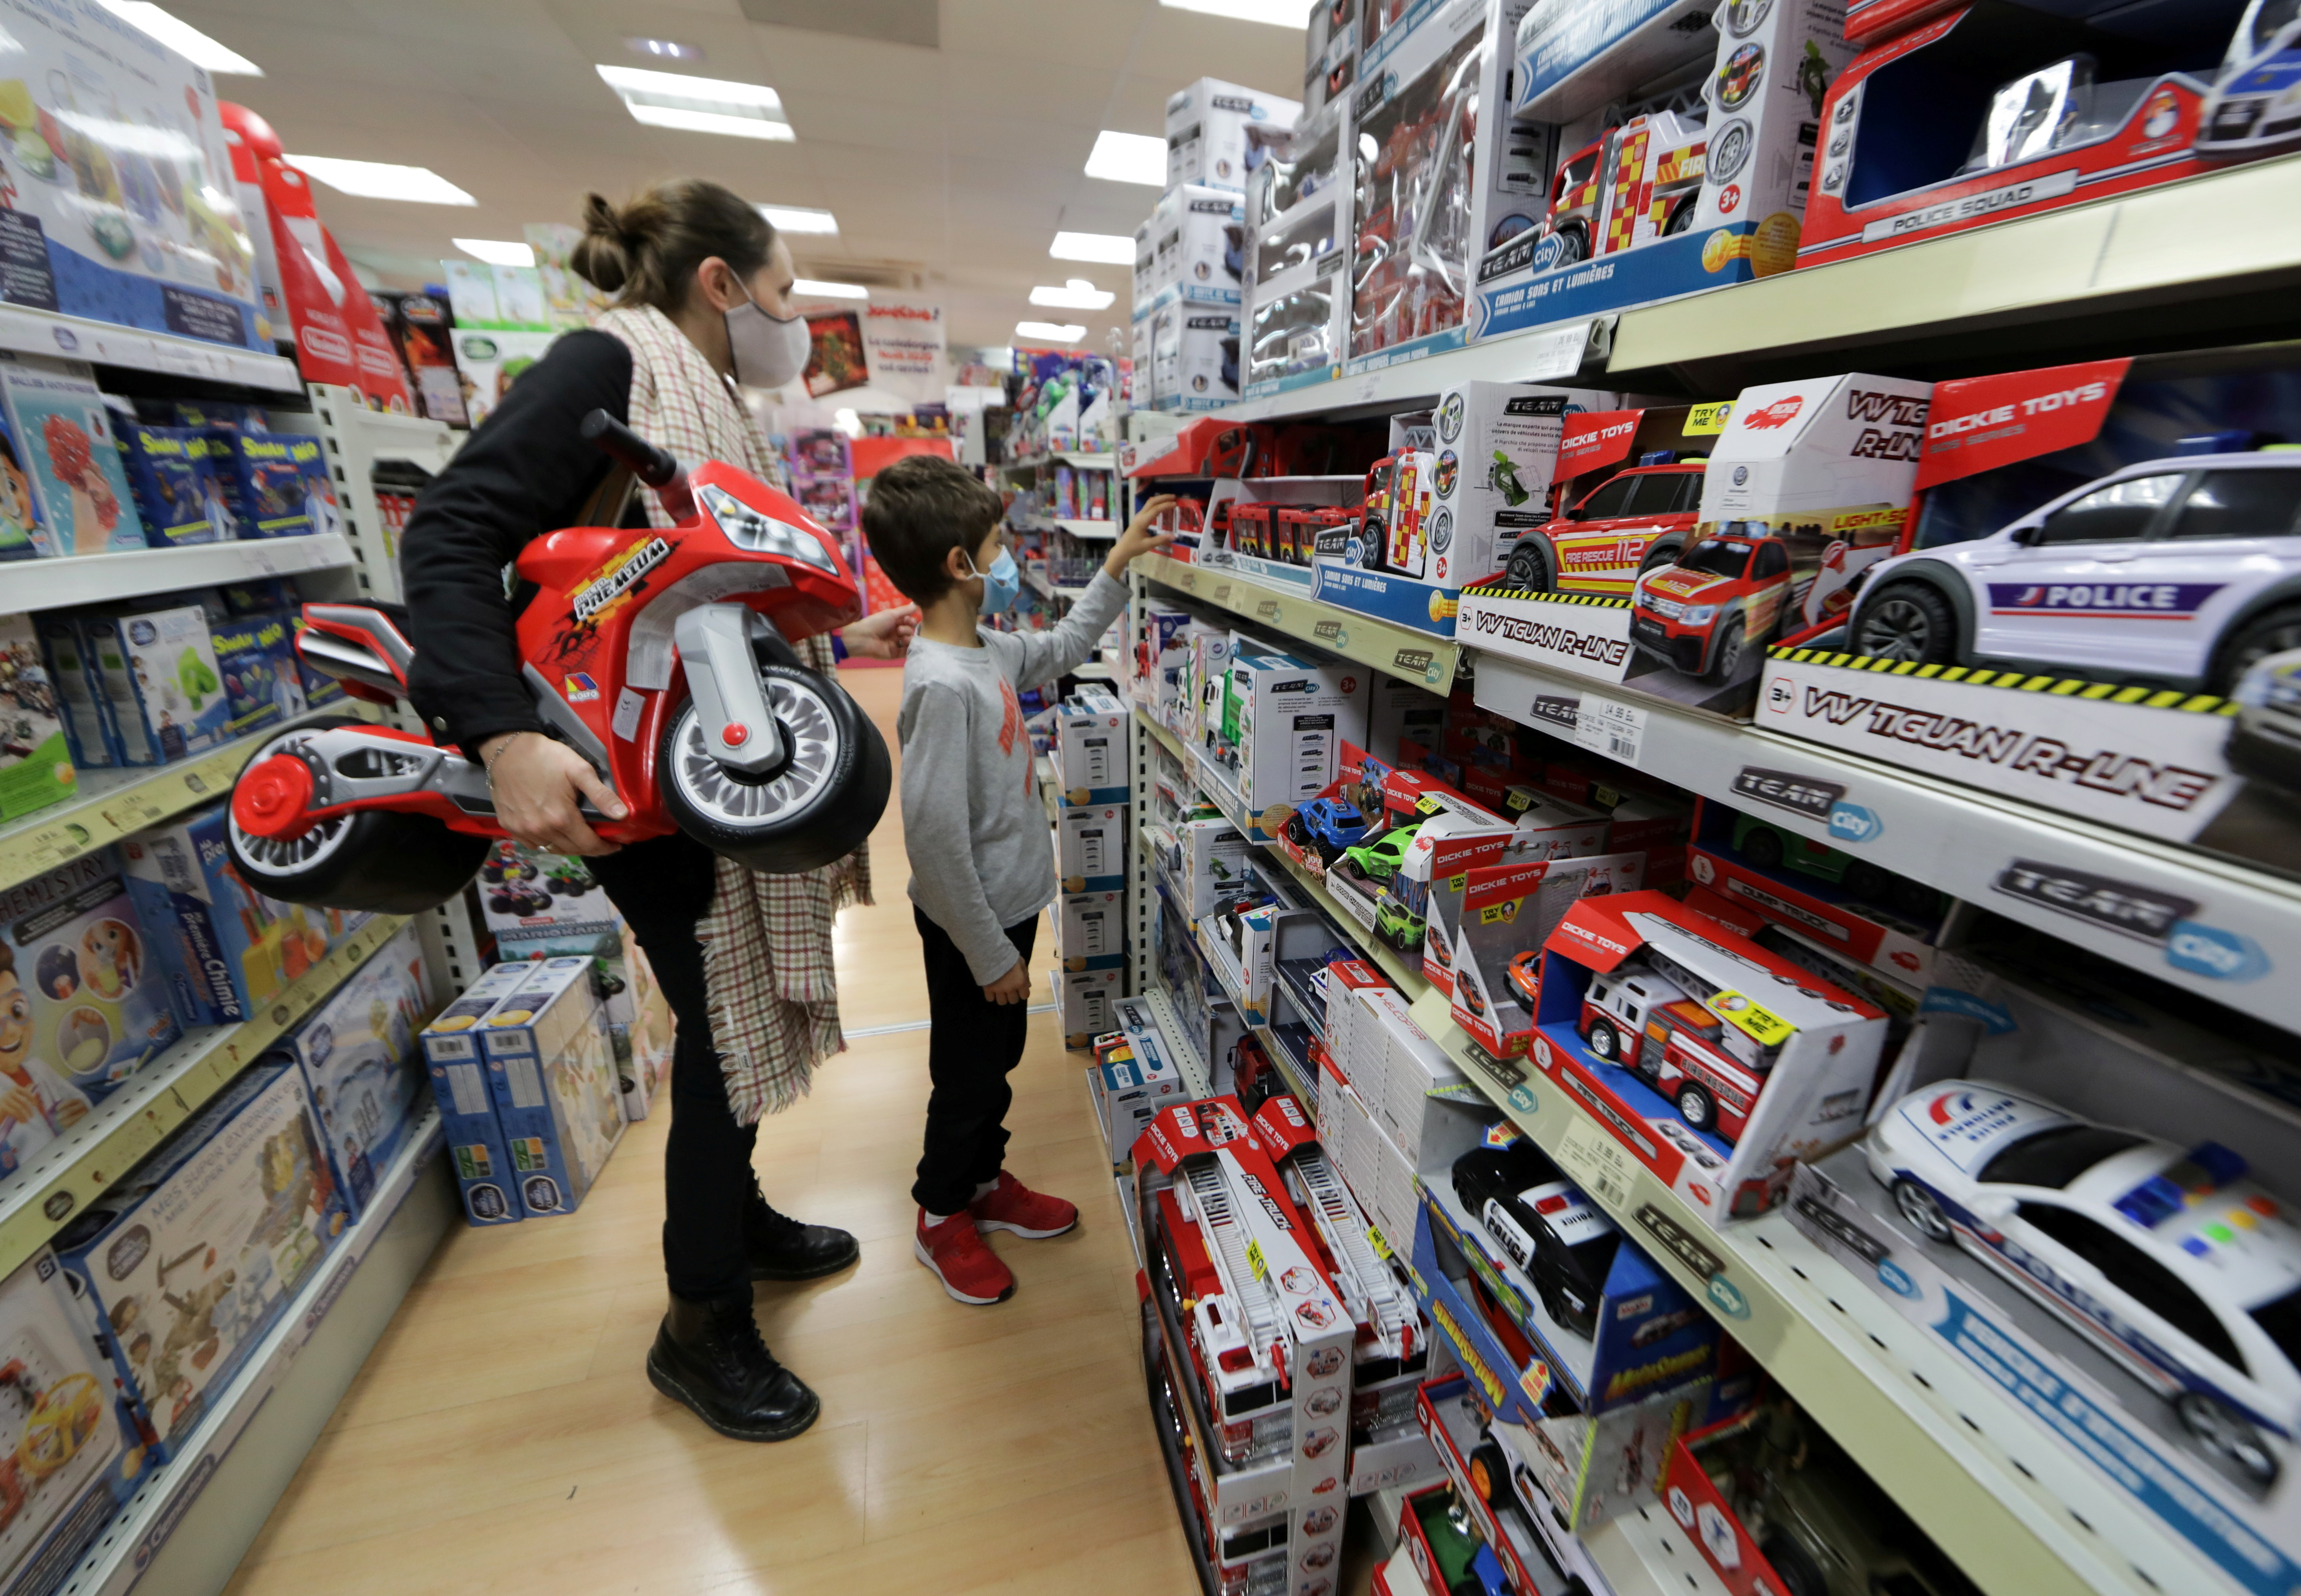 People wearing protective face masks shop in the toy store JoueClub Contesso as shops reopen doors after weeks of lockdown to combat a resurgence of the coronavirus disease (COVID-19) outbreak, in Nice, France, November 28, 2020. REUTERS/Eric Gaillard